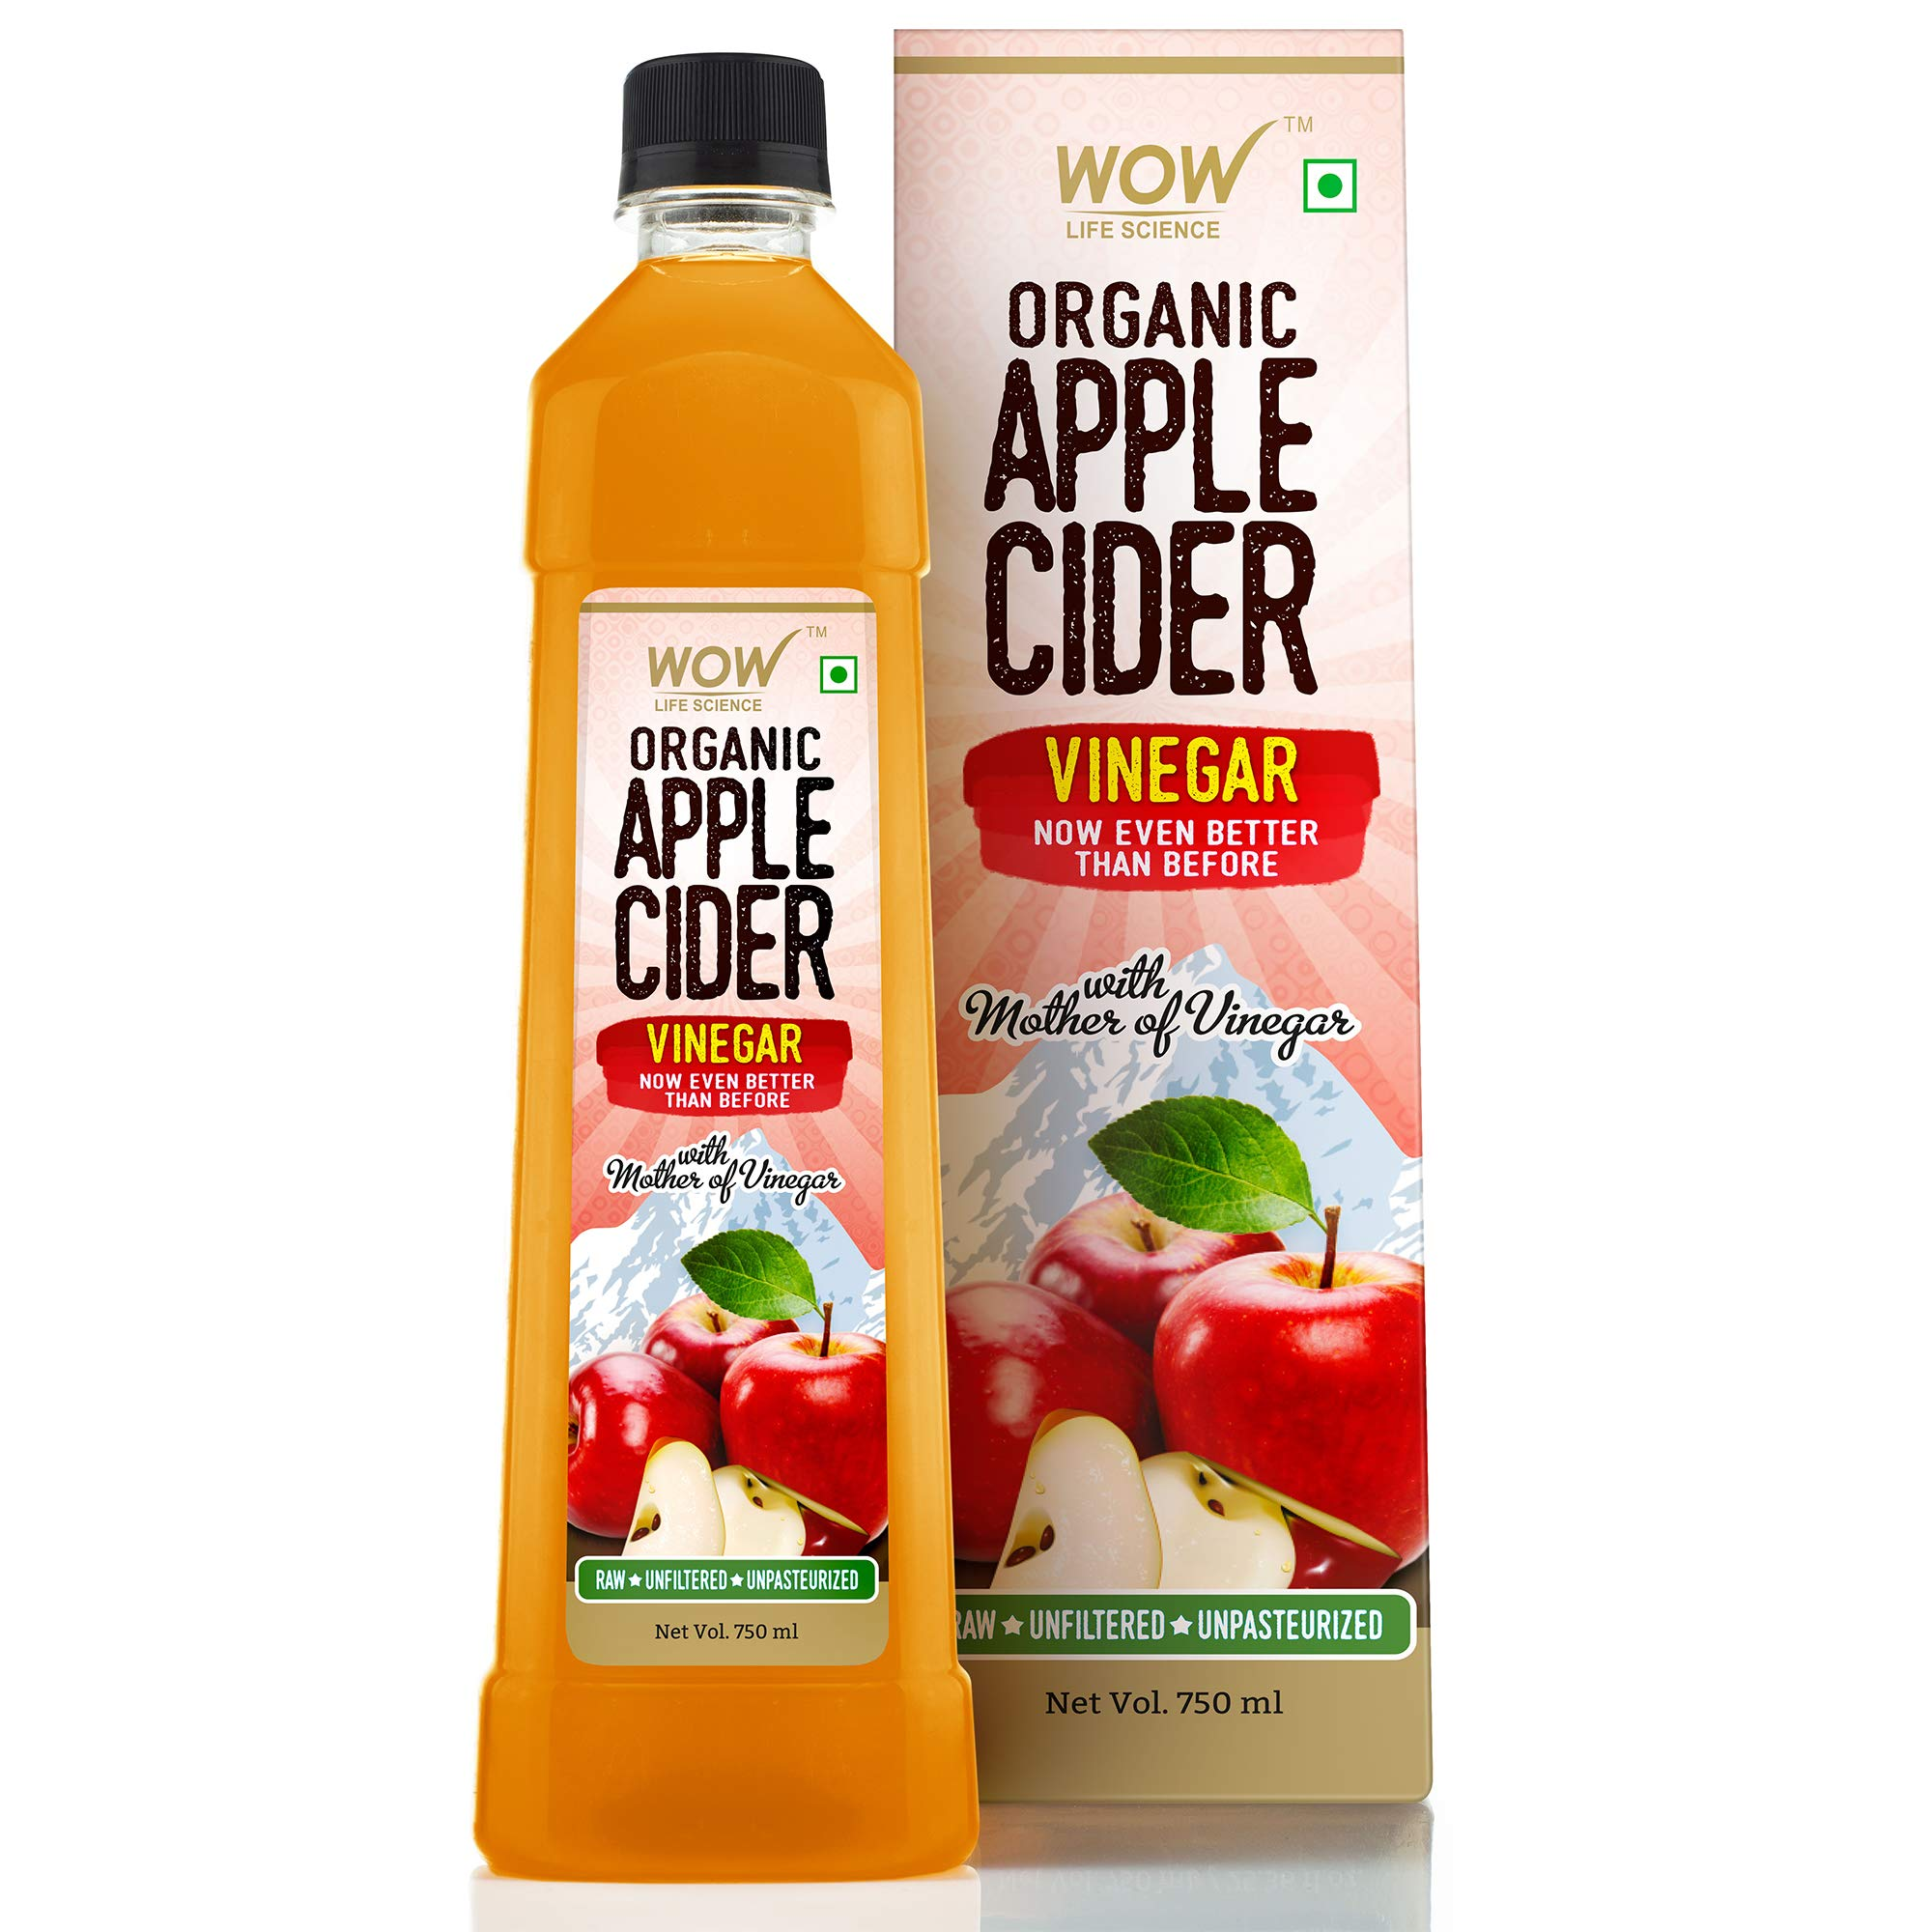 WOW Life Science Organic Apple Cider Vinegar - with strand of mother - not from concentrate – 750 ml product image